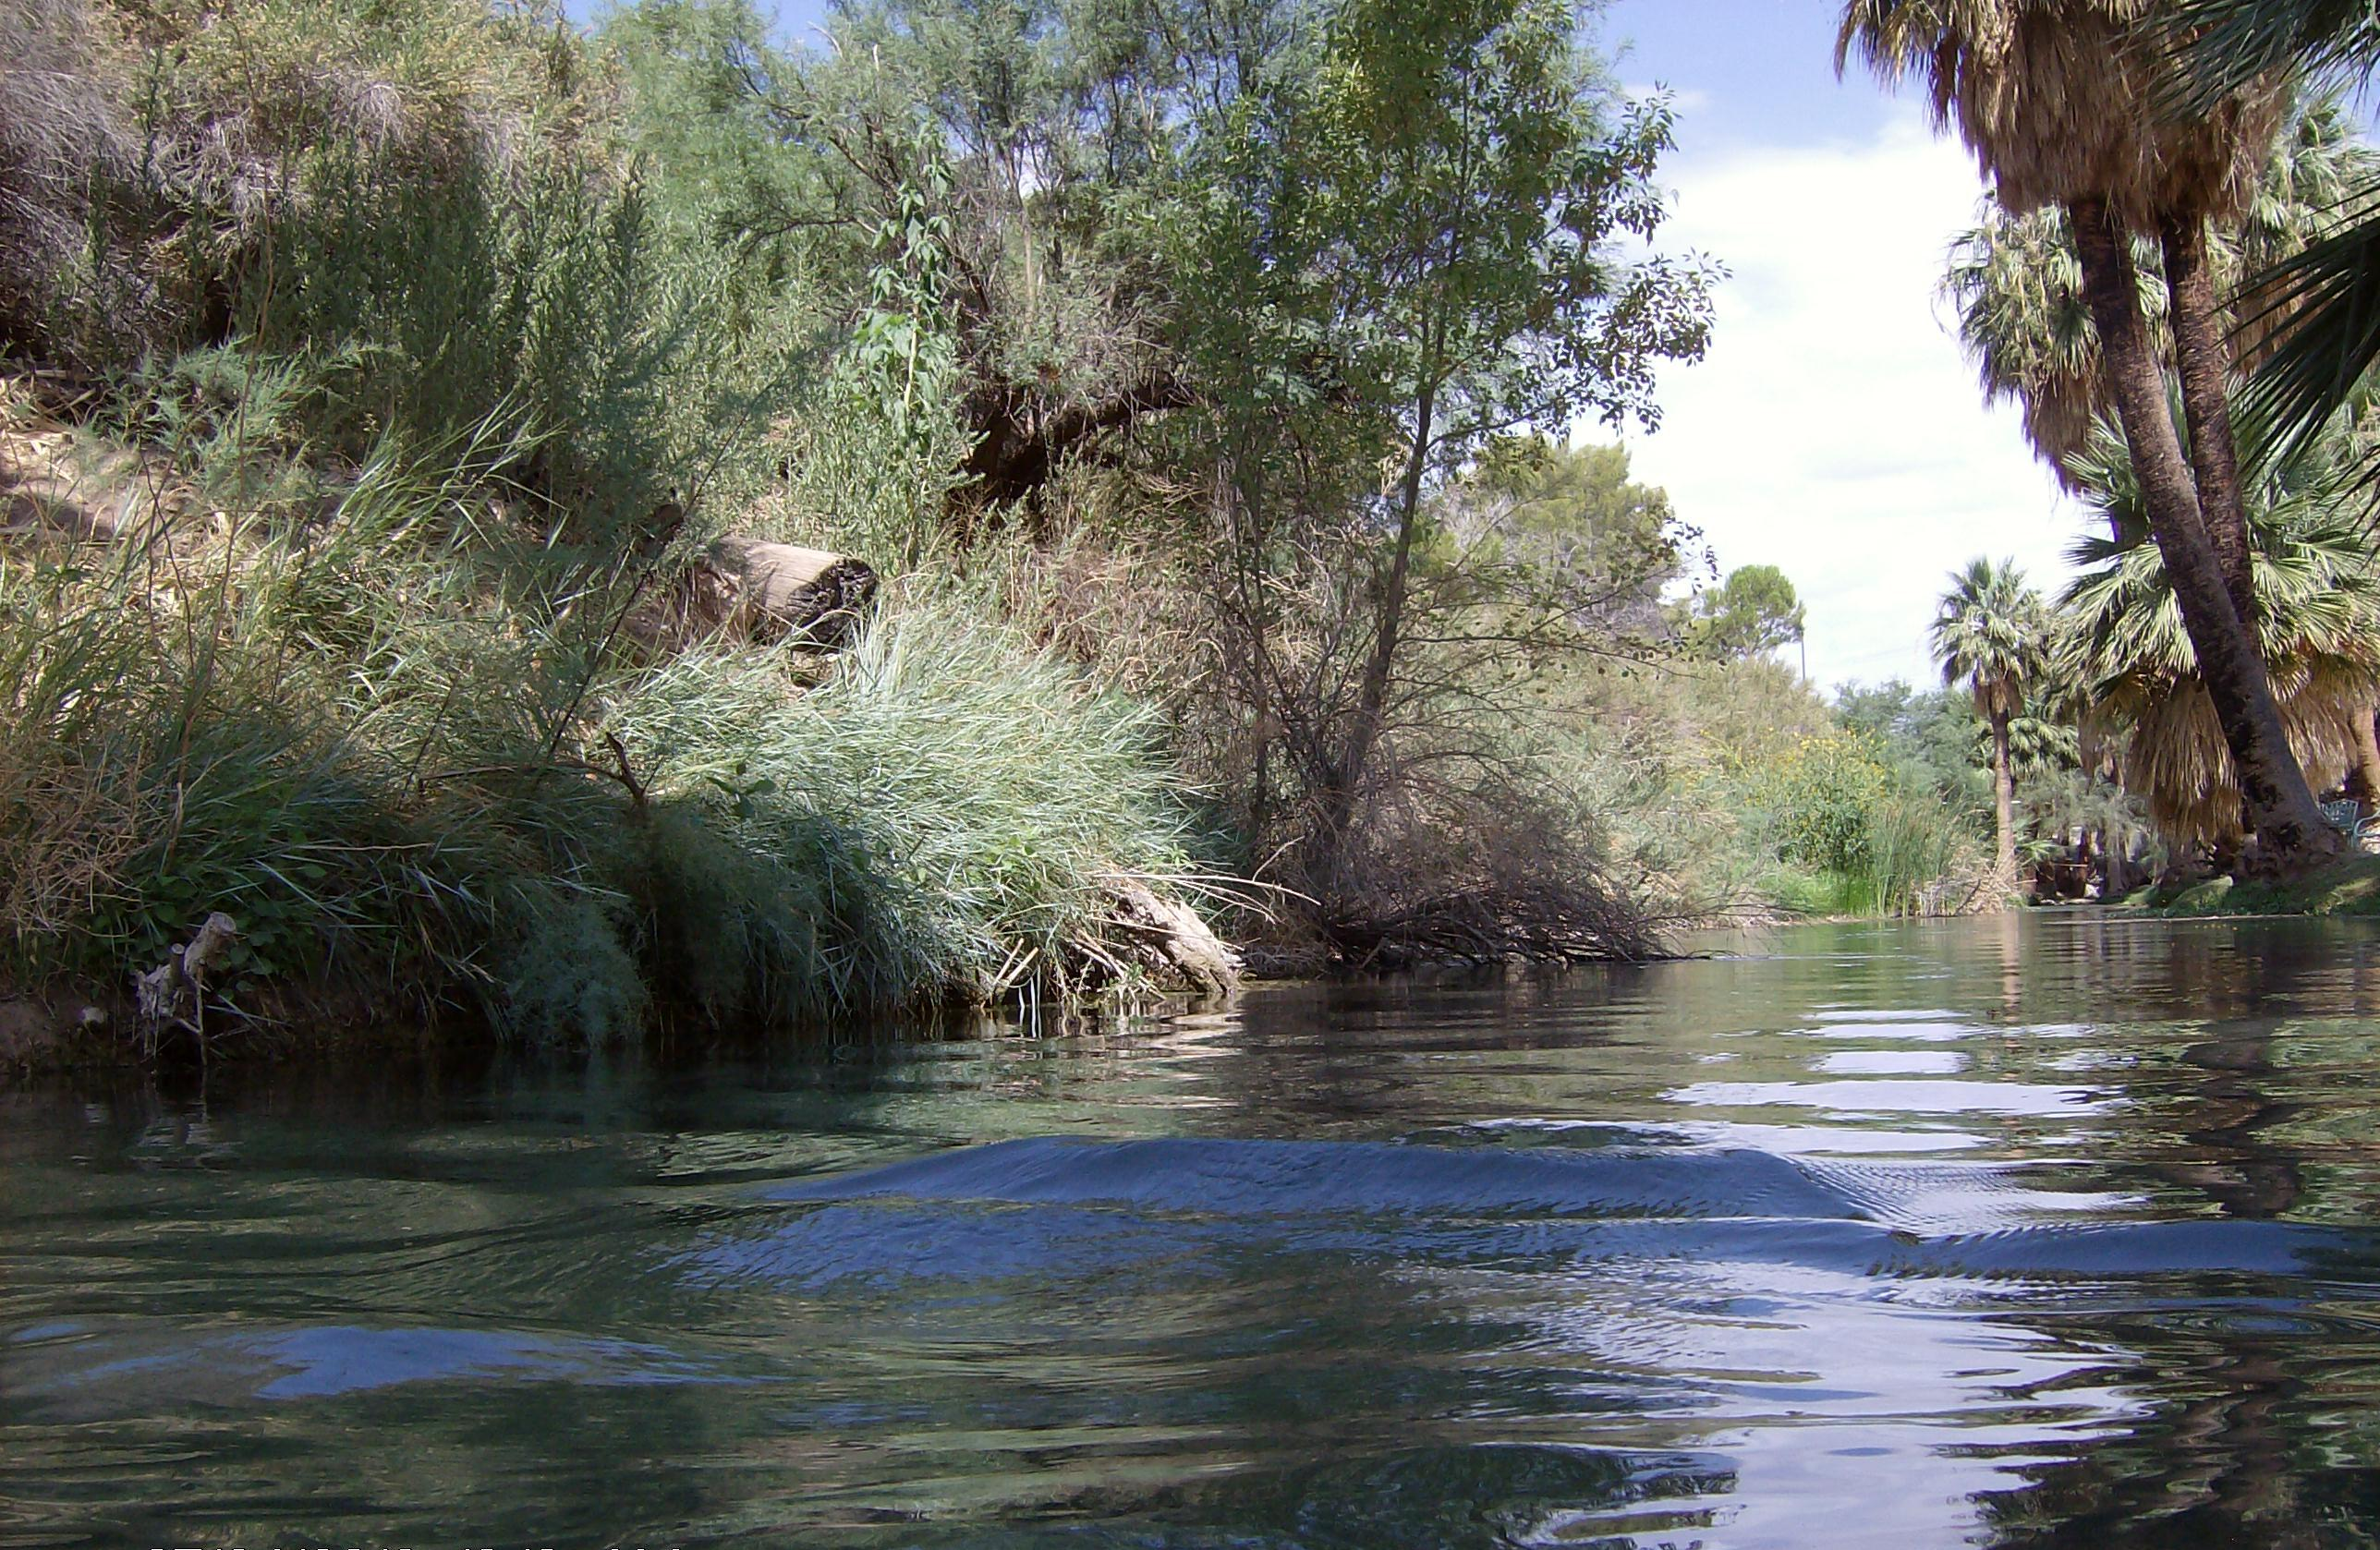 The 116-acre Muddy River Reserve Unit is located in the Upper Muddy River watershed near the town of Moapa, Nevada, date not specified | Photo courtesy of Clark County, Nevada, Desert Conservation Program; St. George News